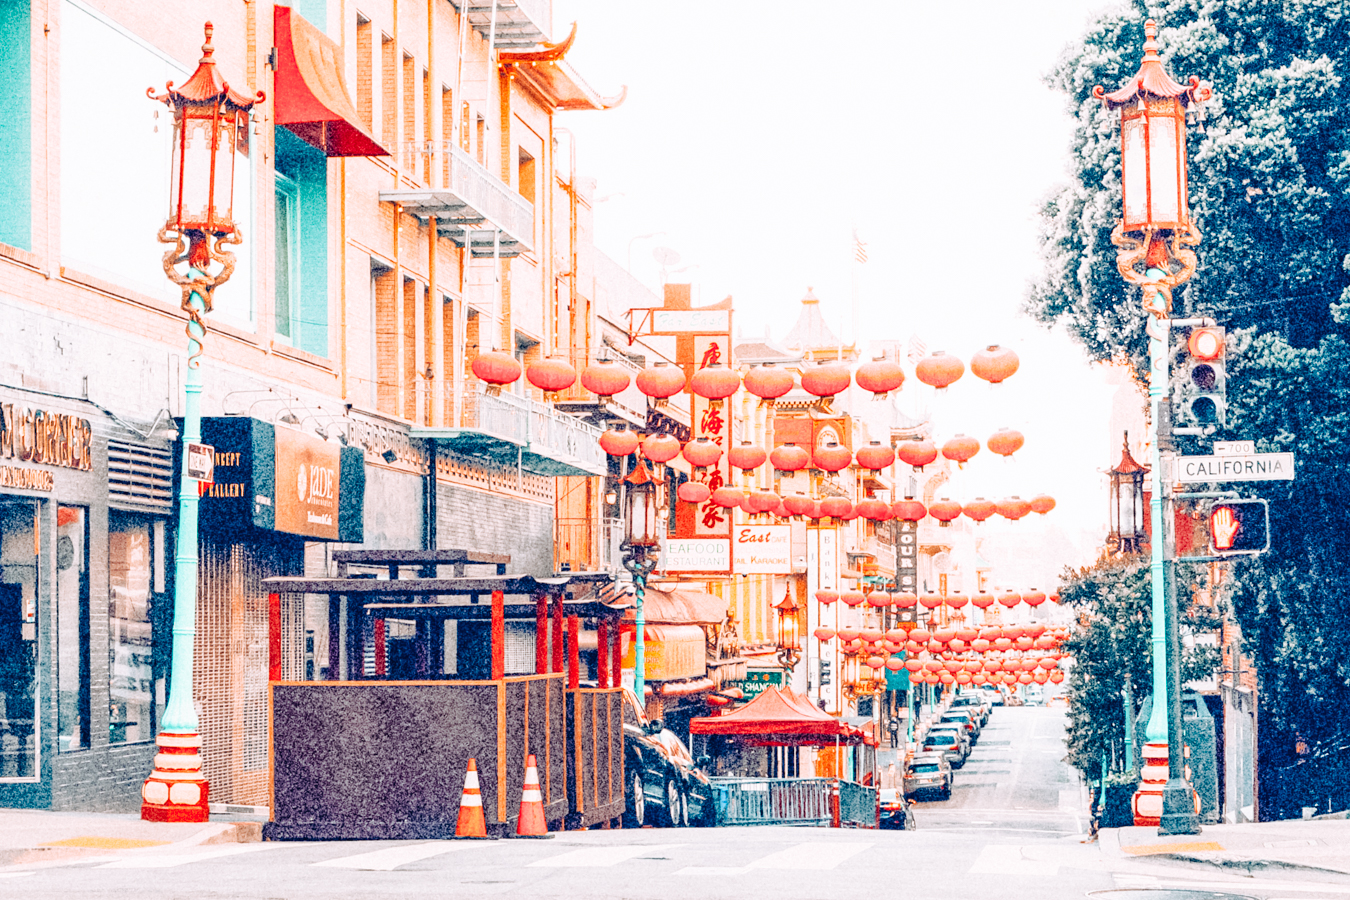 Street in Chinatown in San Francisco